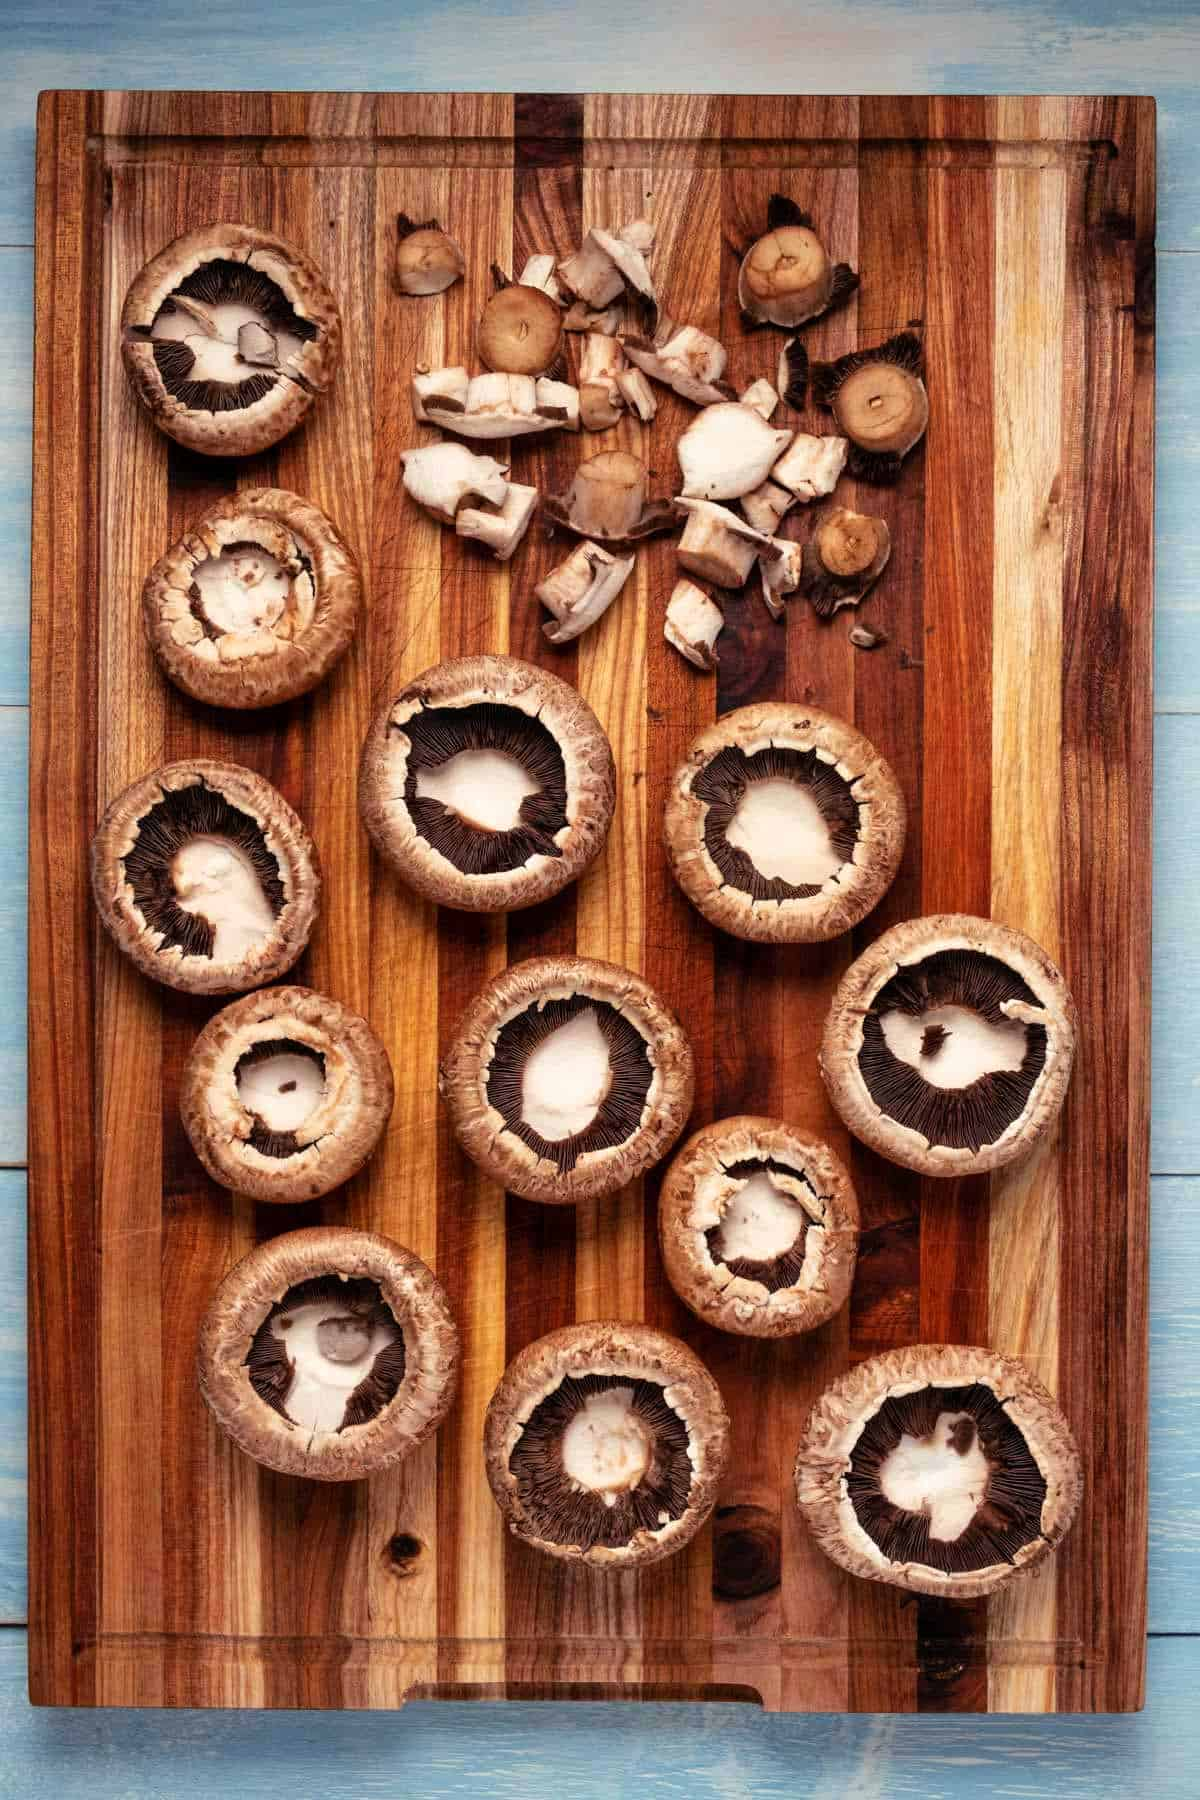 Large mushrooms on a wooden cutting board.